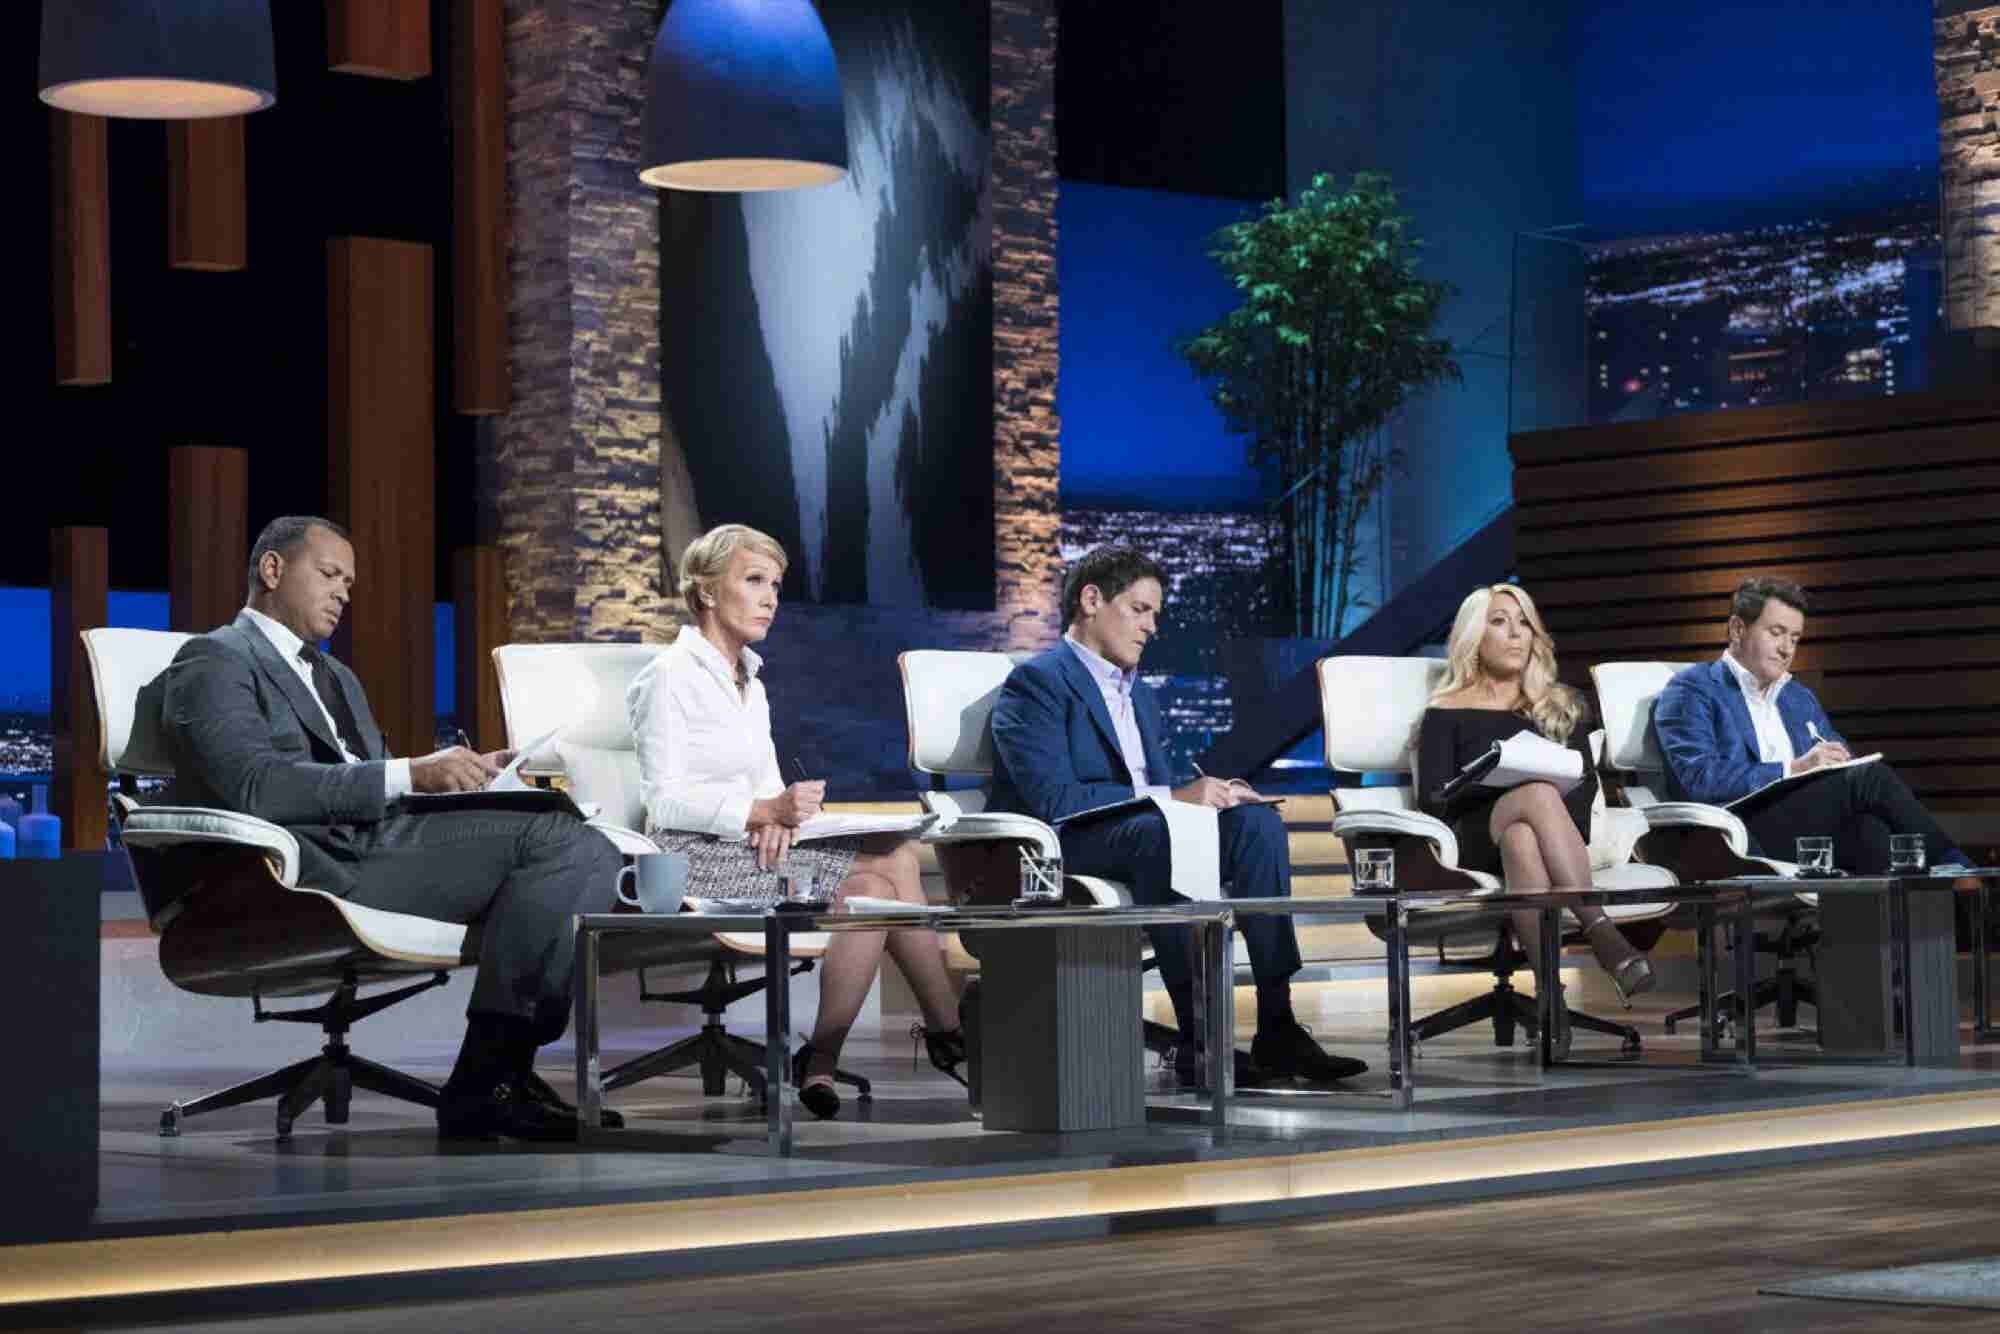 Why Walking Away From Offers on 'Shark Tank' Was a Great Decision for These 3 Entrepreneurs